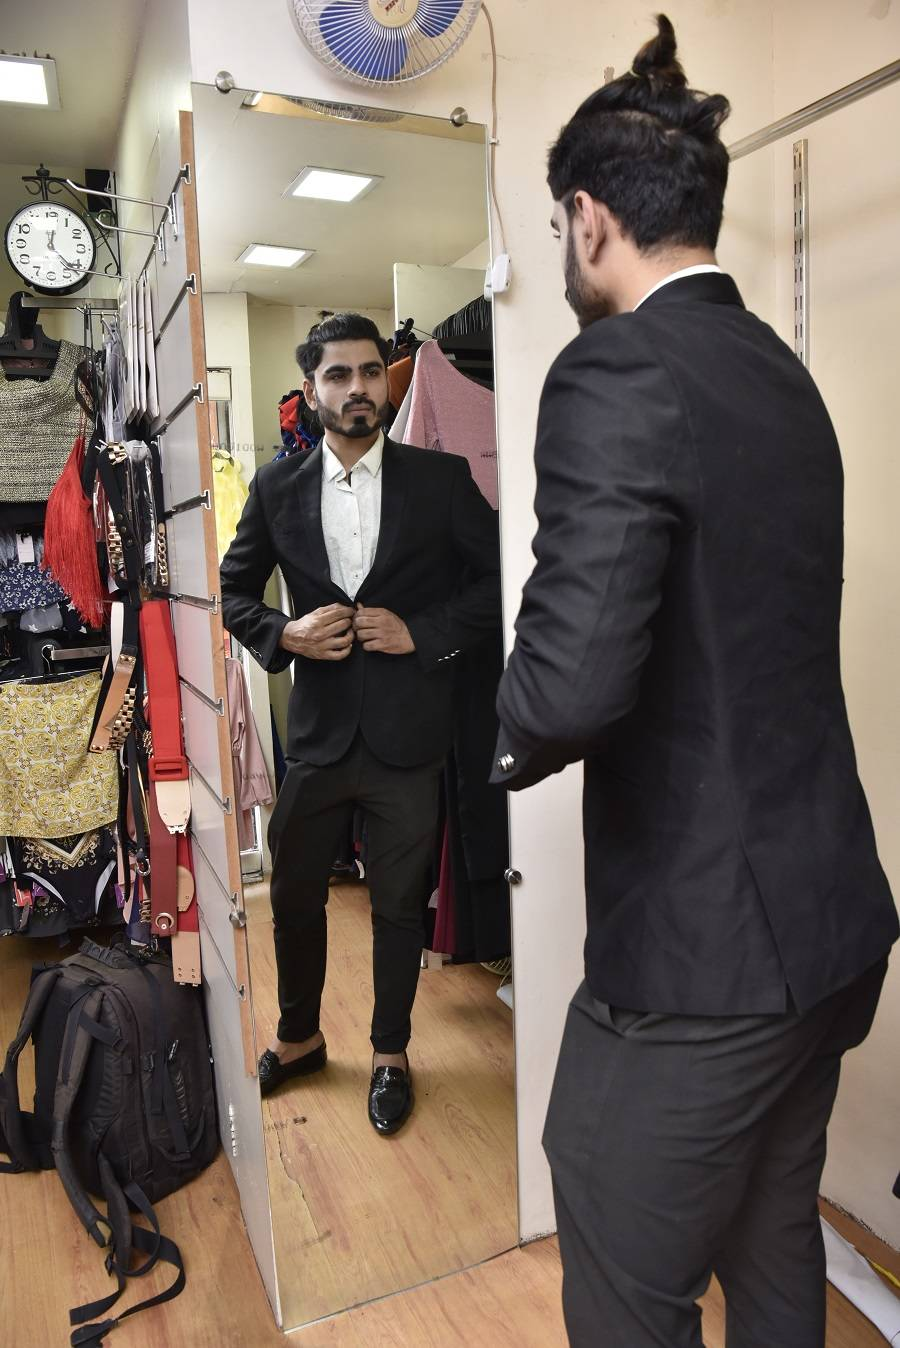 Rentals Millennials Rent Out Designer Swag To Look Stylish And Also Curb Fashion Waste Times Of India